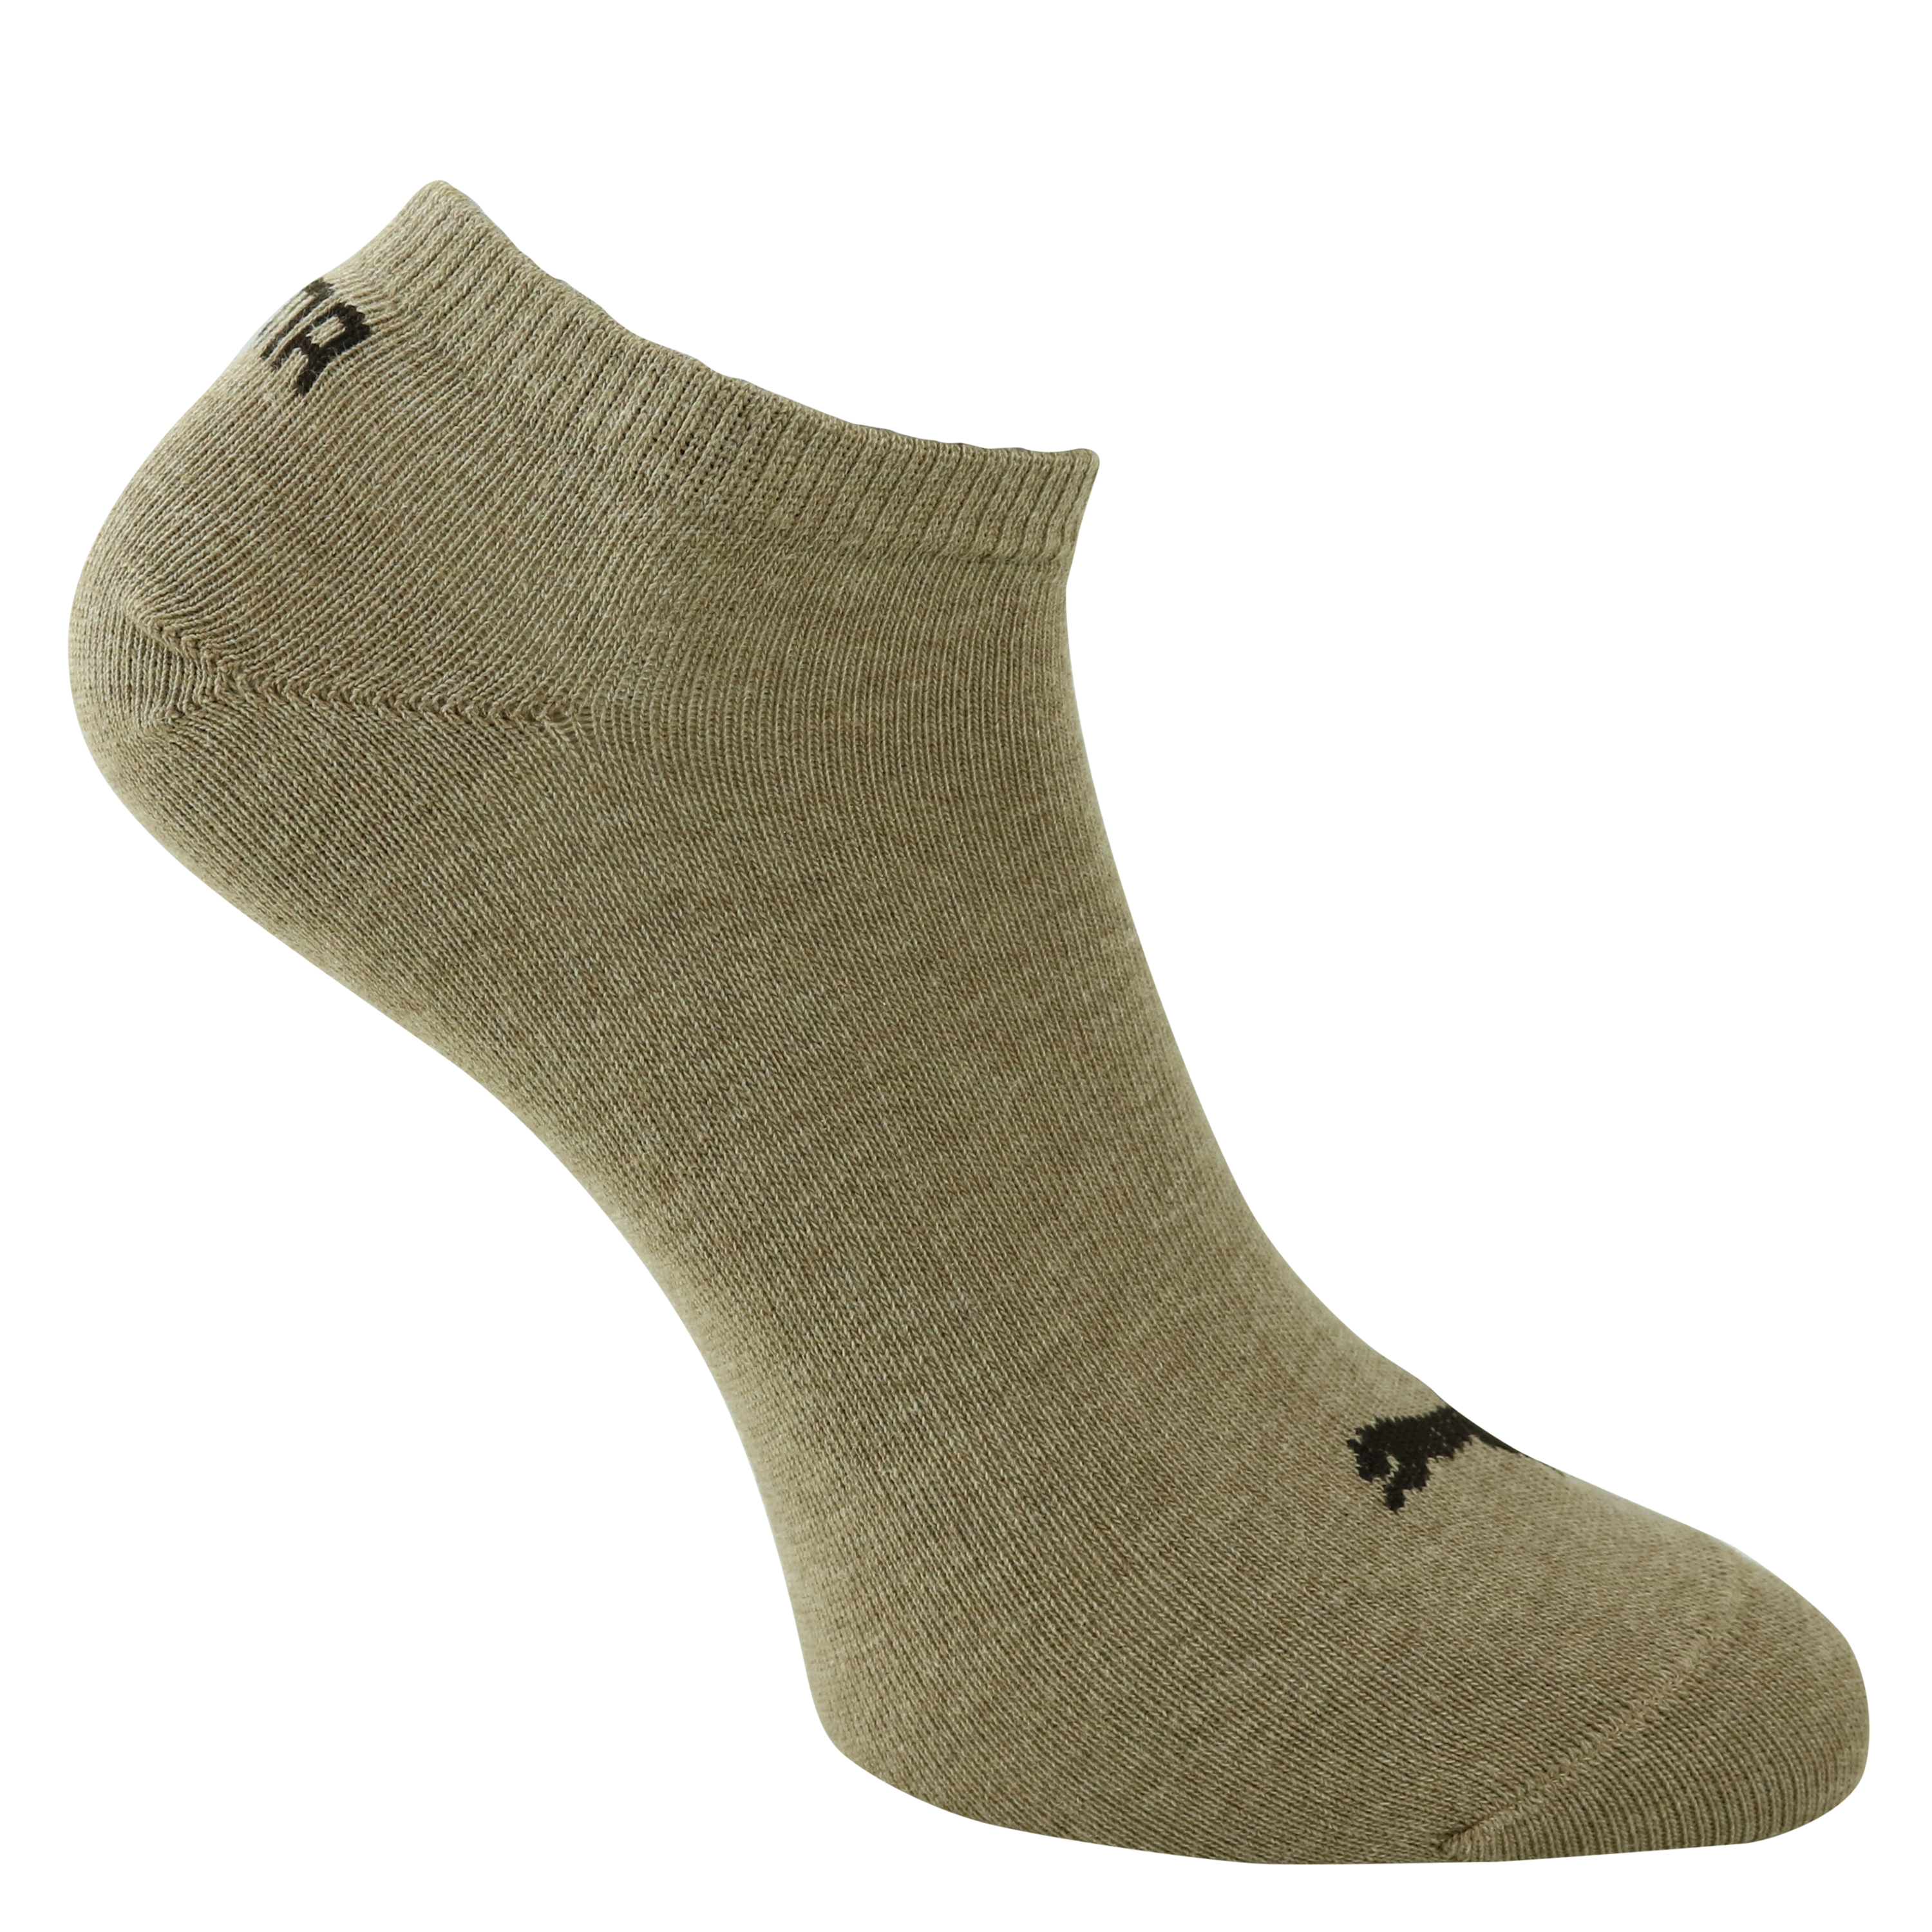 puma sneaker socken braun beige socken. Black Bedroom Furniture Sets. Home Design Ideas